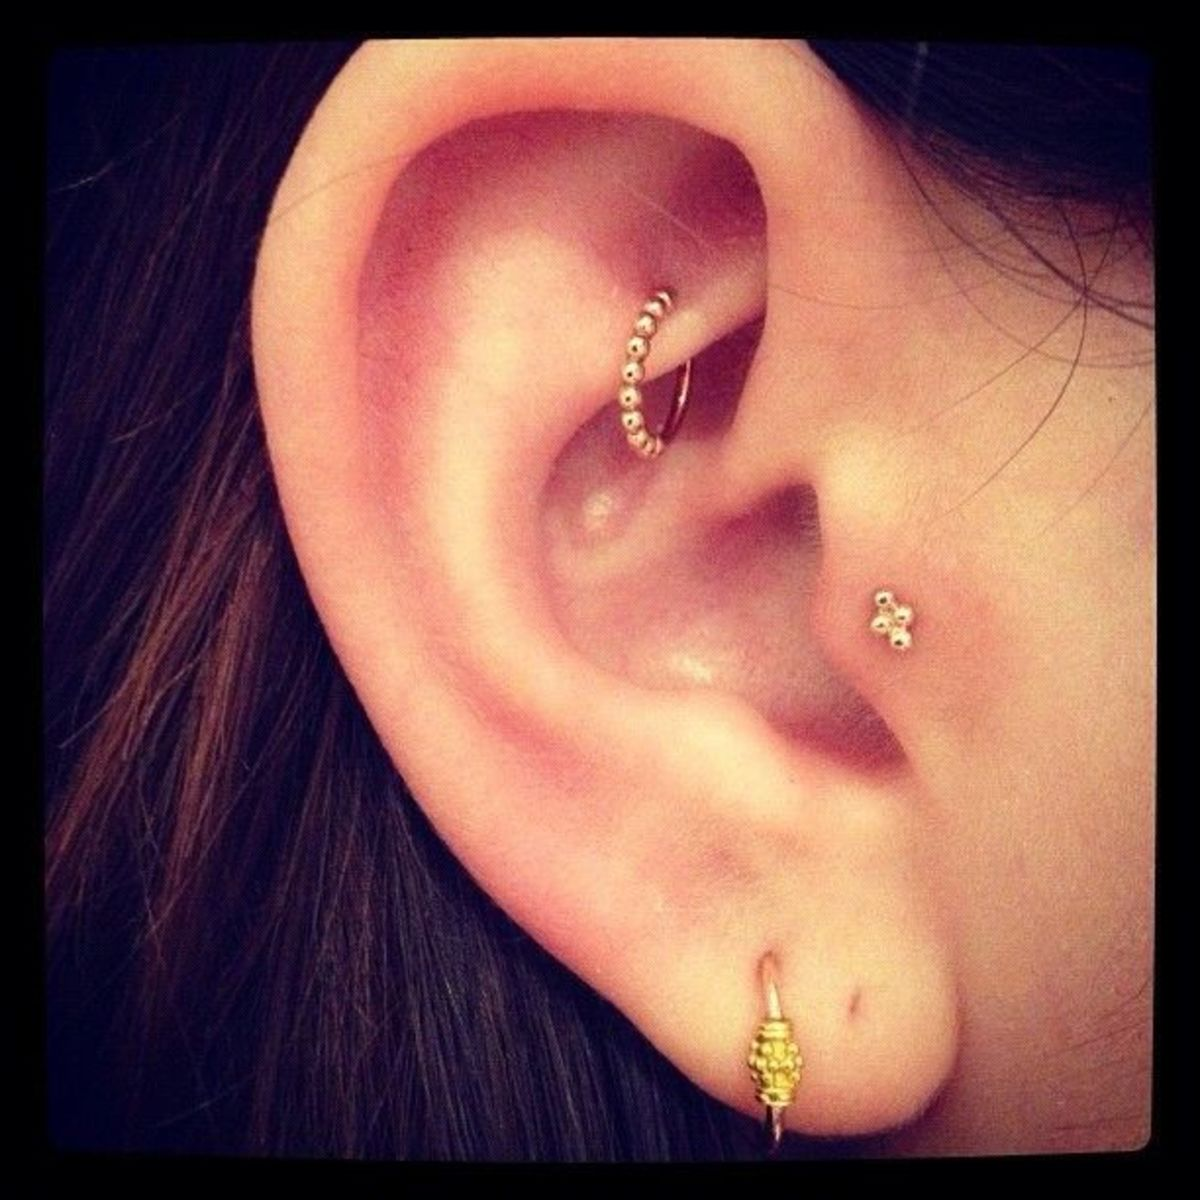 Rook, tragus, and lobe piercings